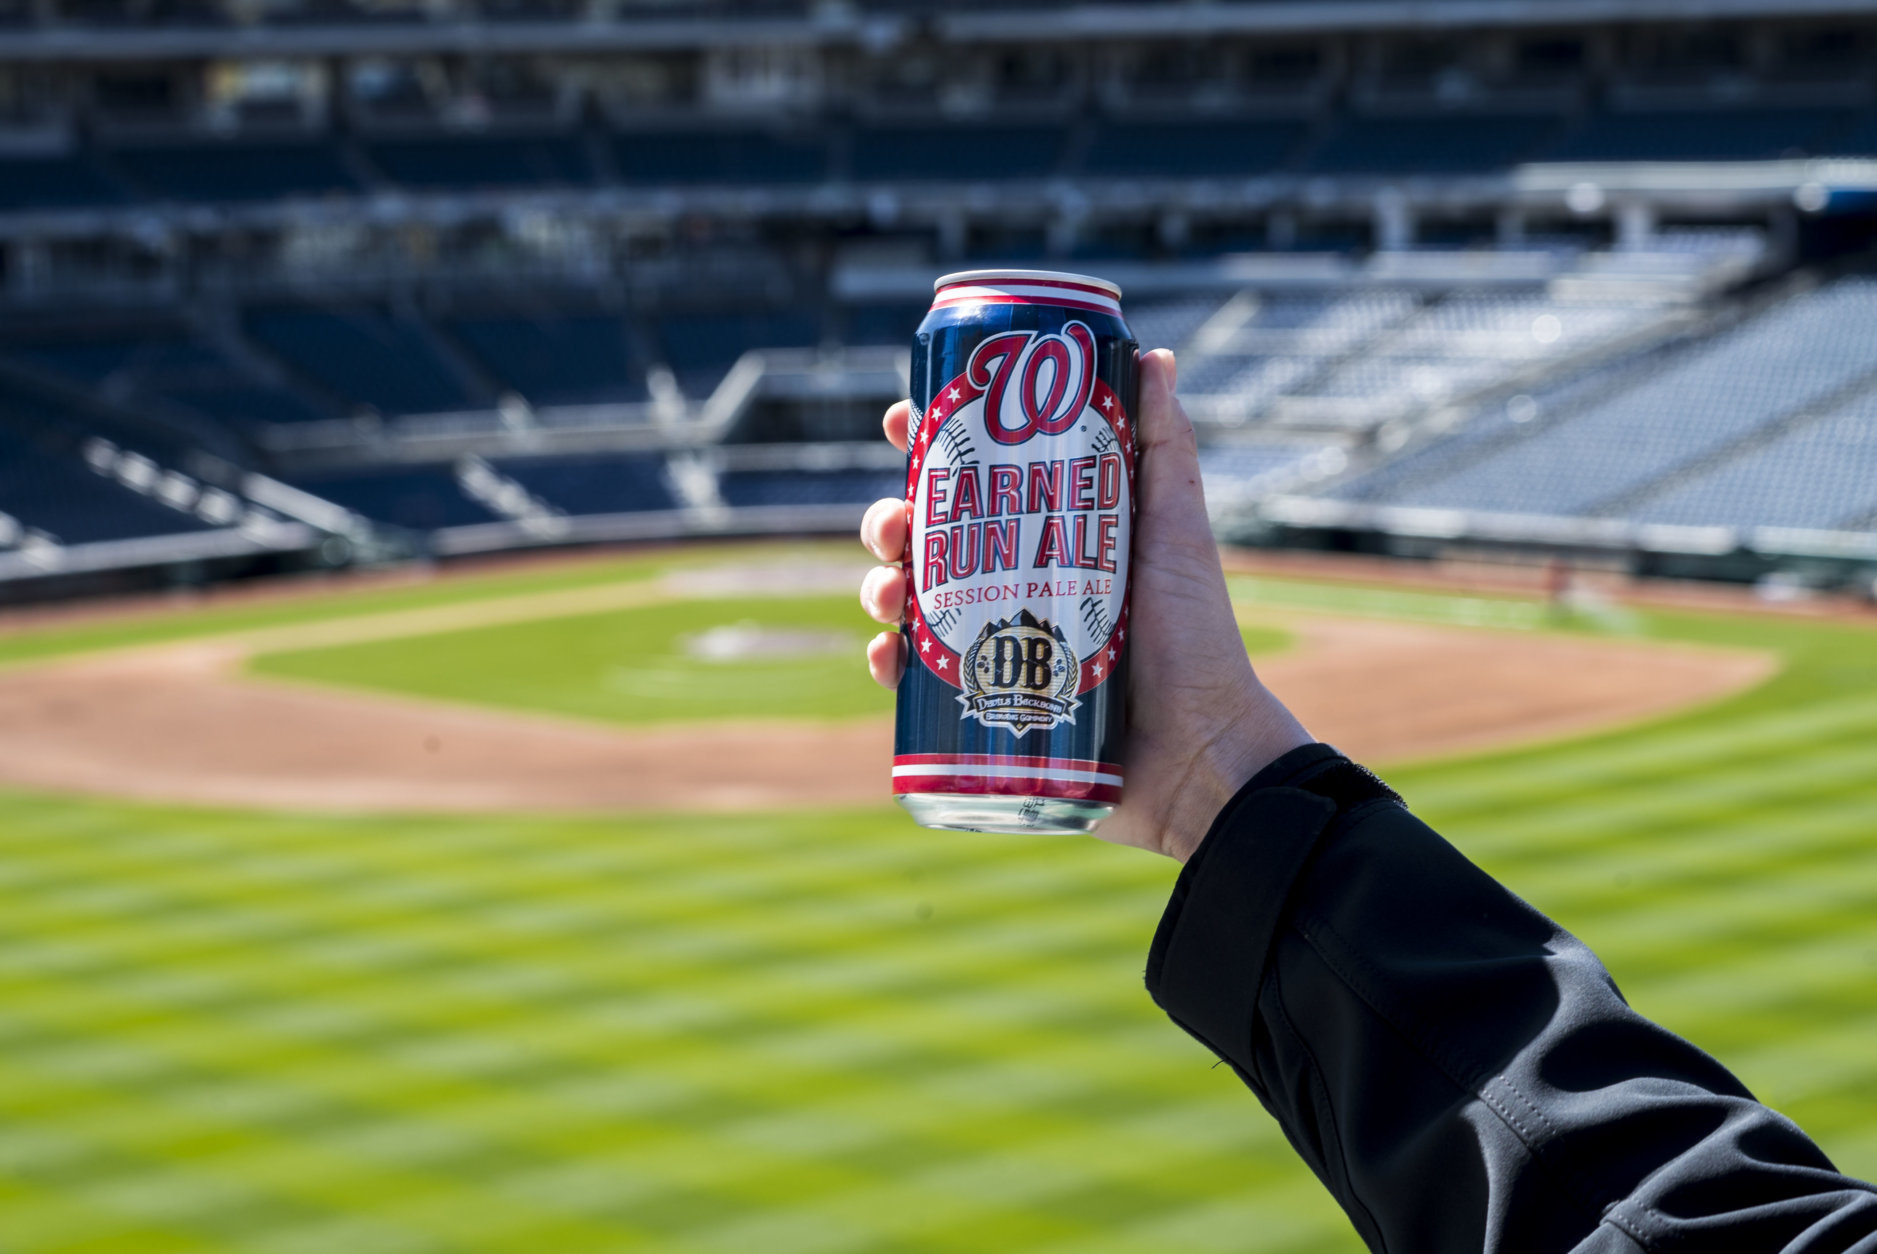 Devils Backbone debuted Earned Run Ale as a draft at its Left Field Lounge bar at Nationals Park last year. (Credit: Devils Backbone)